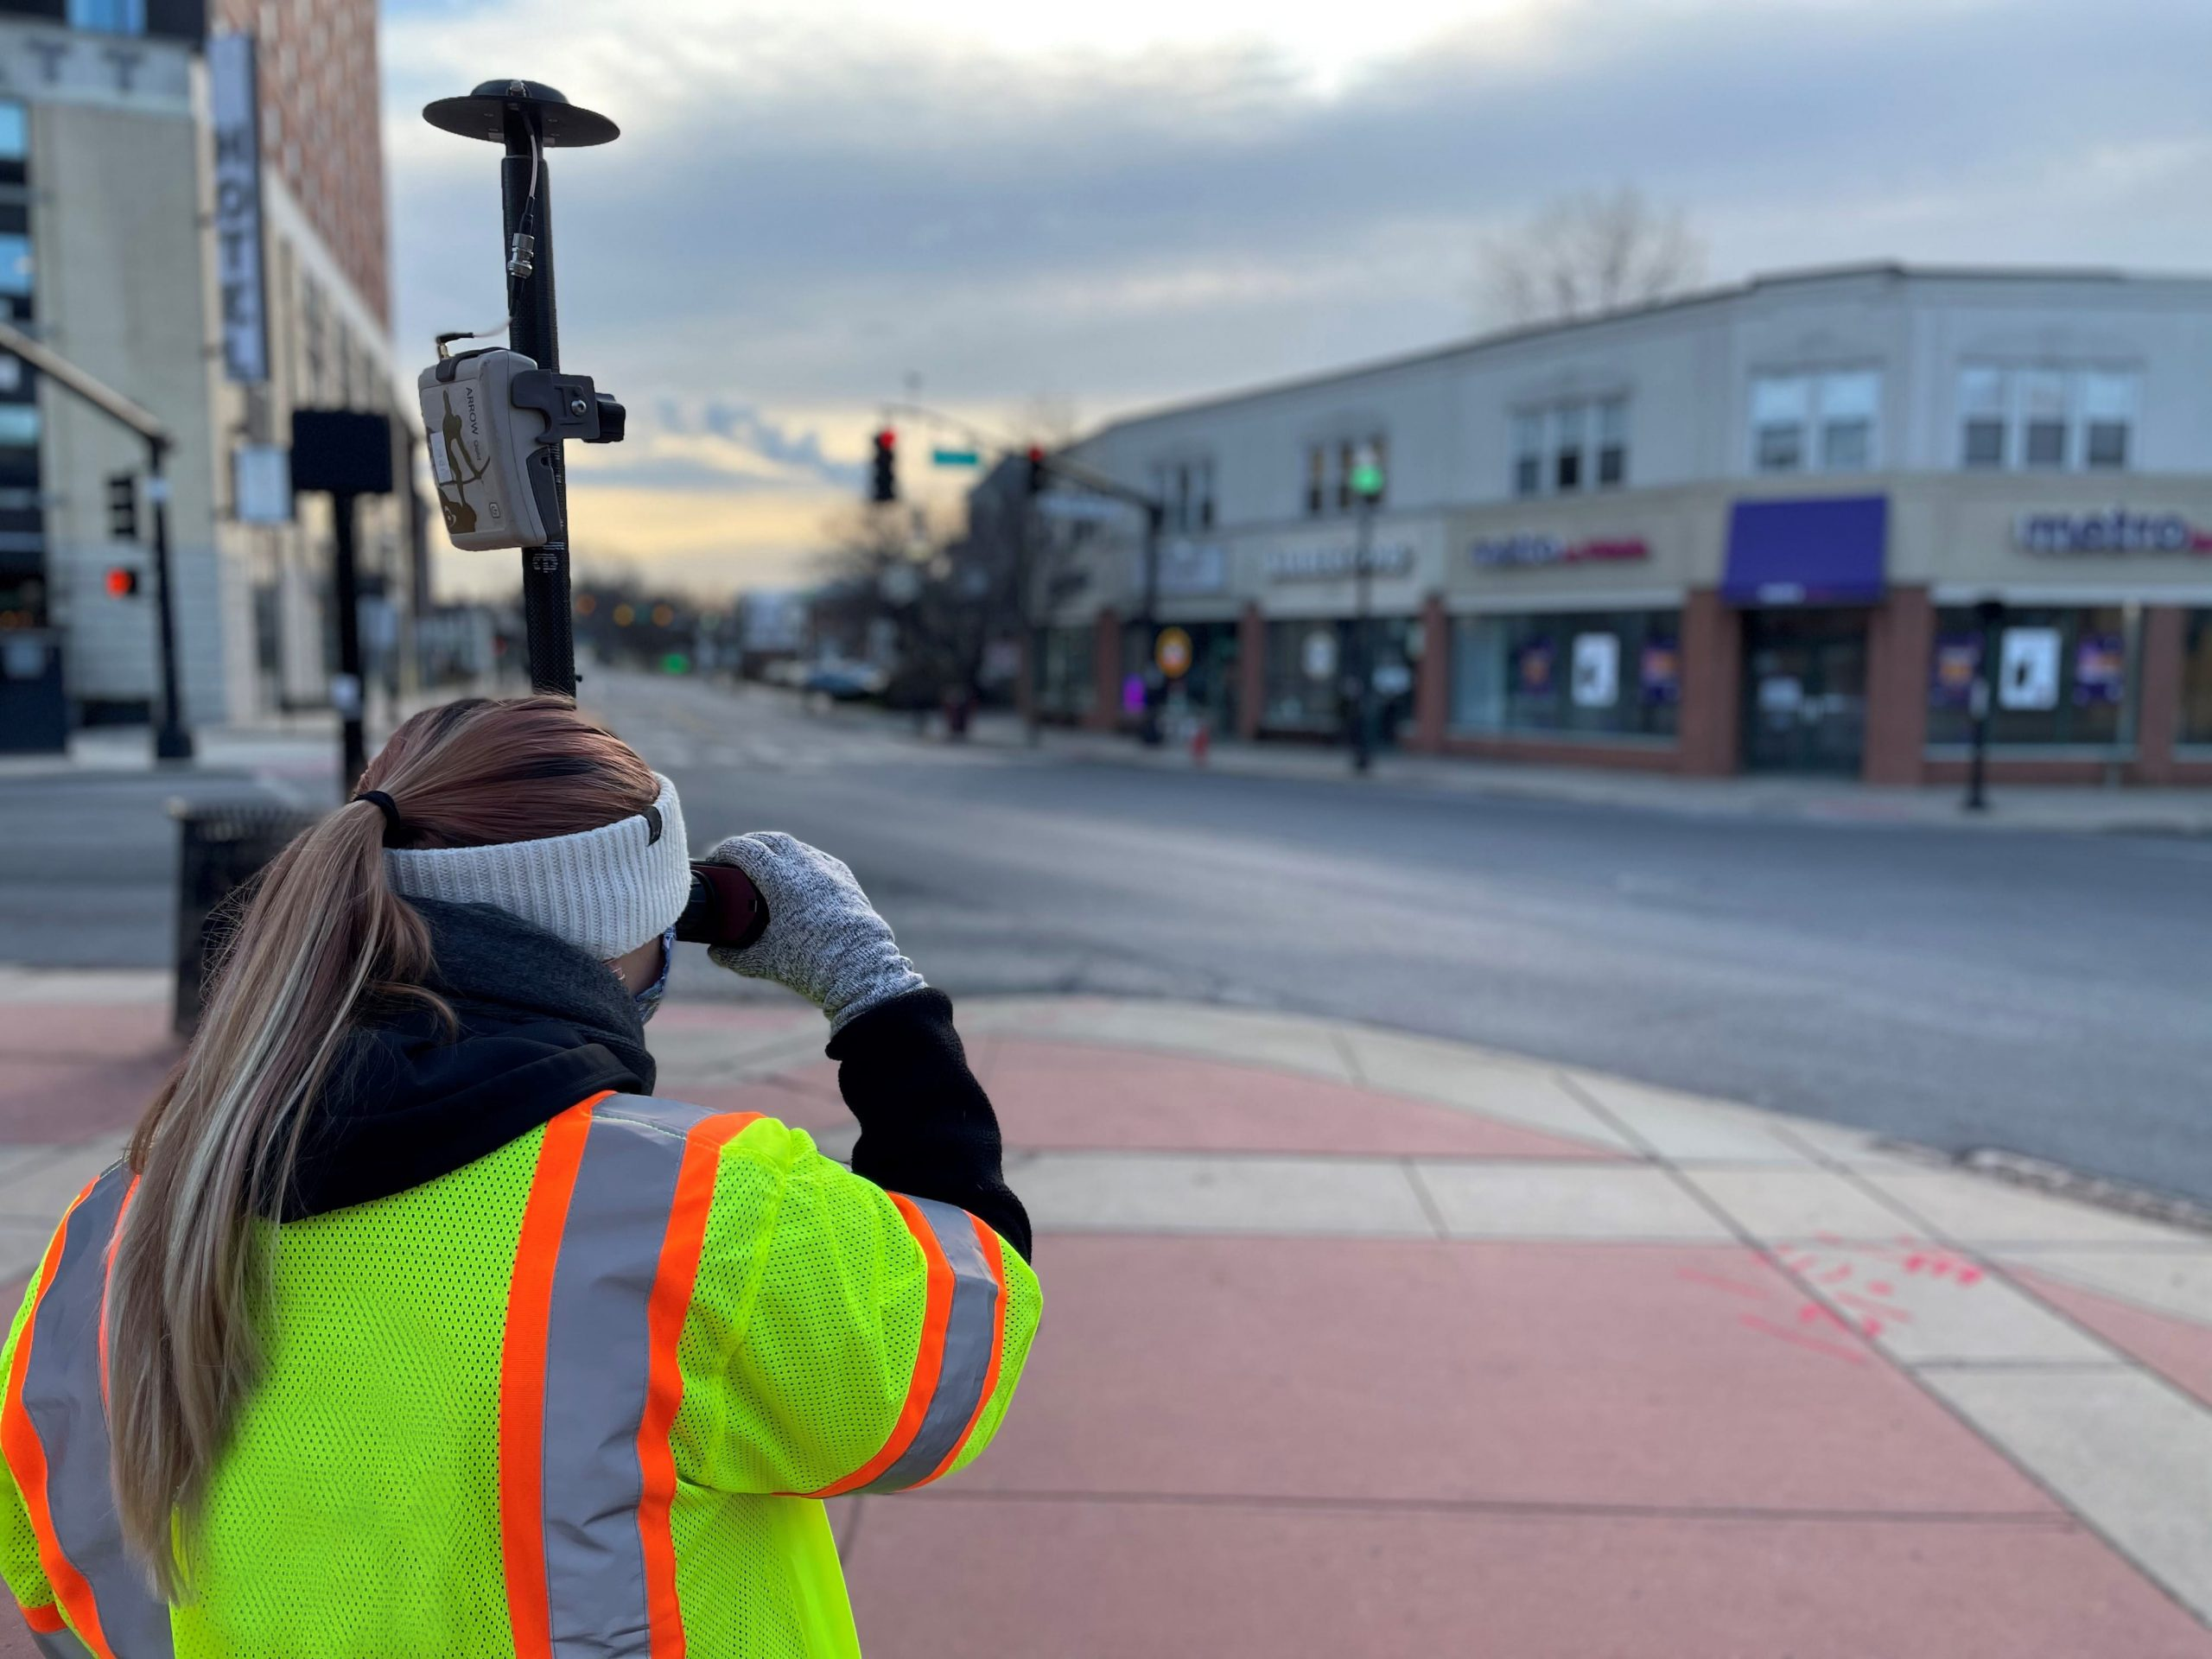 Amanda Paton uses Laser GIS mobile mapping with Esri ArcGIS, Eos Arrow Gold GNSS receiver, and LTI Laser Tech TruPulse 200X rangefinder in New Jersey for Colliers Engineering & Design